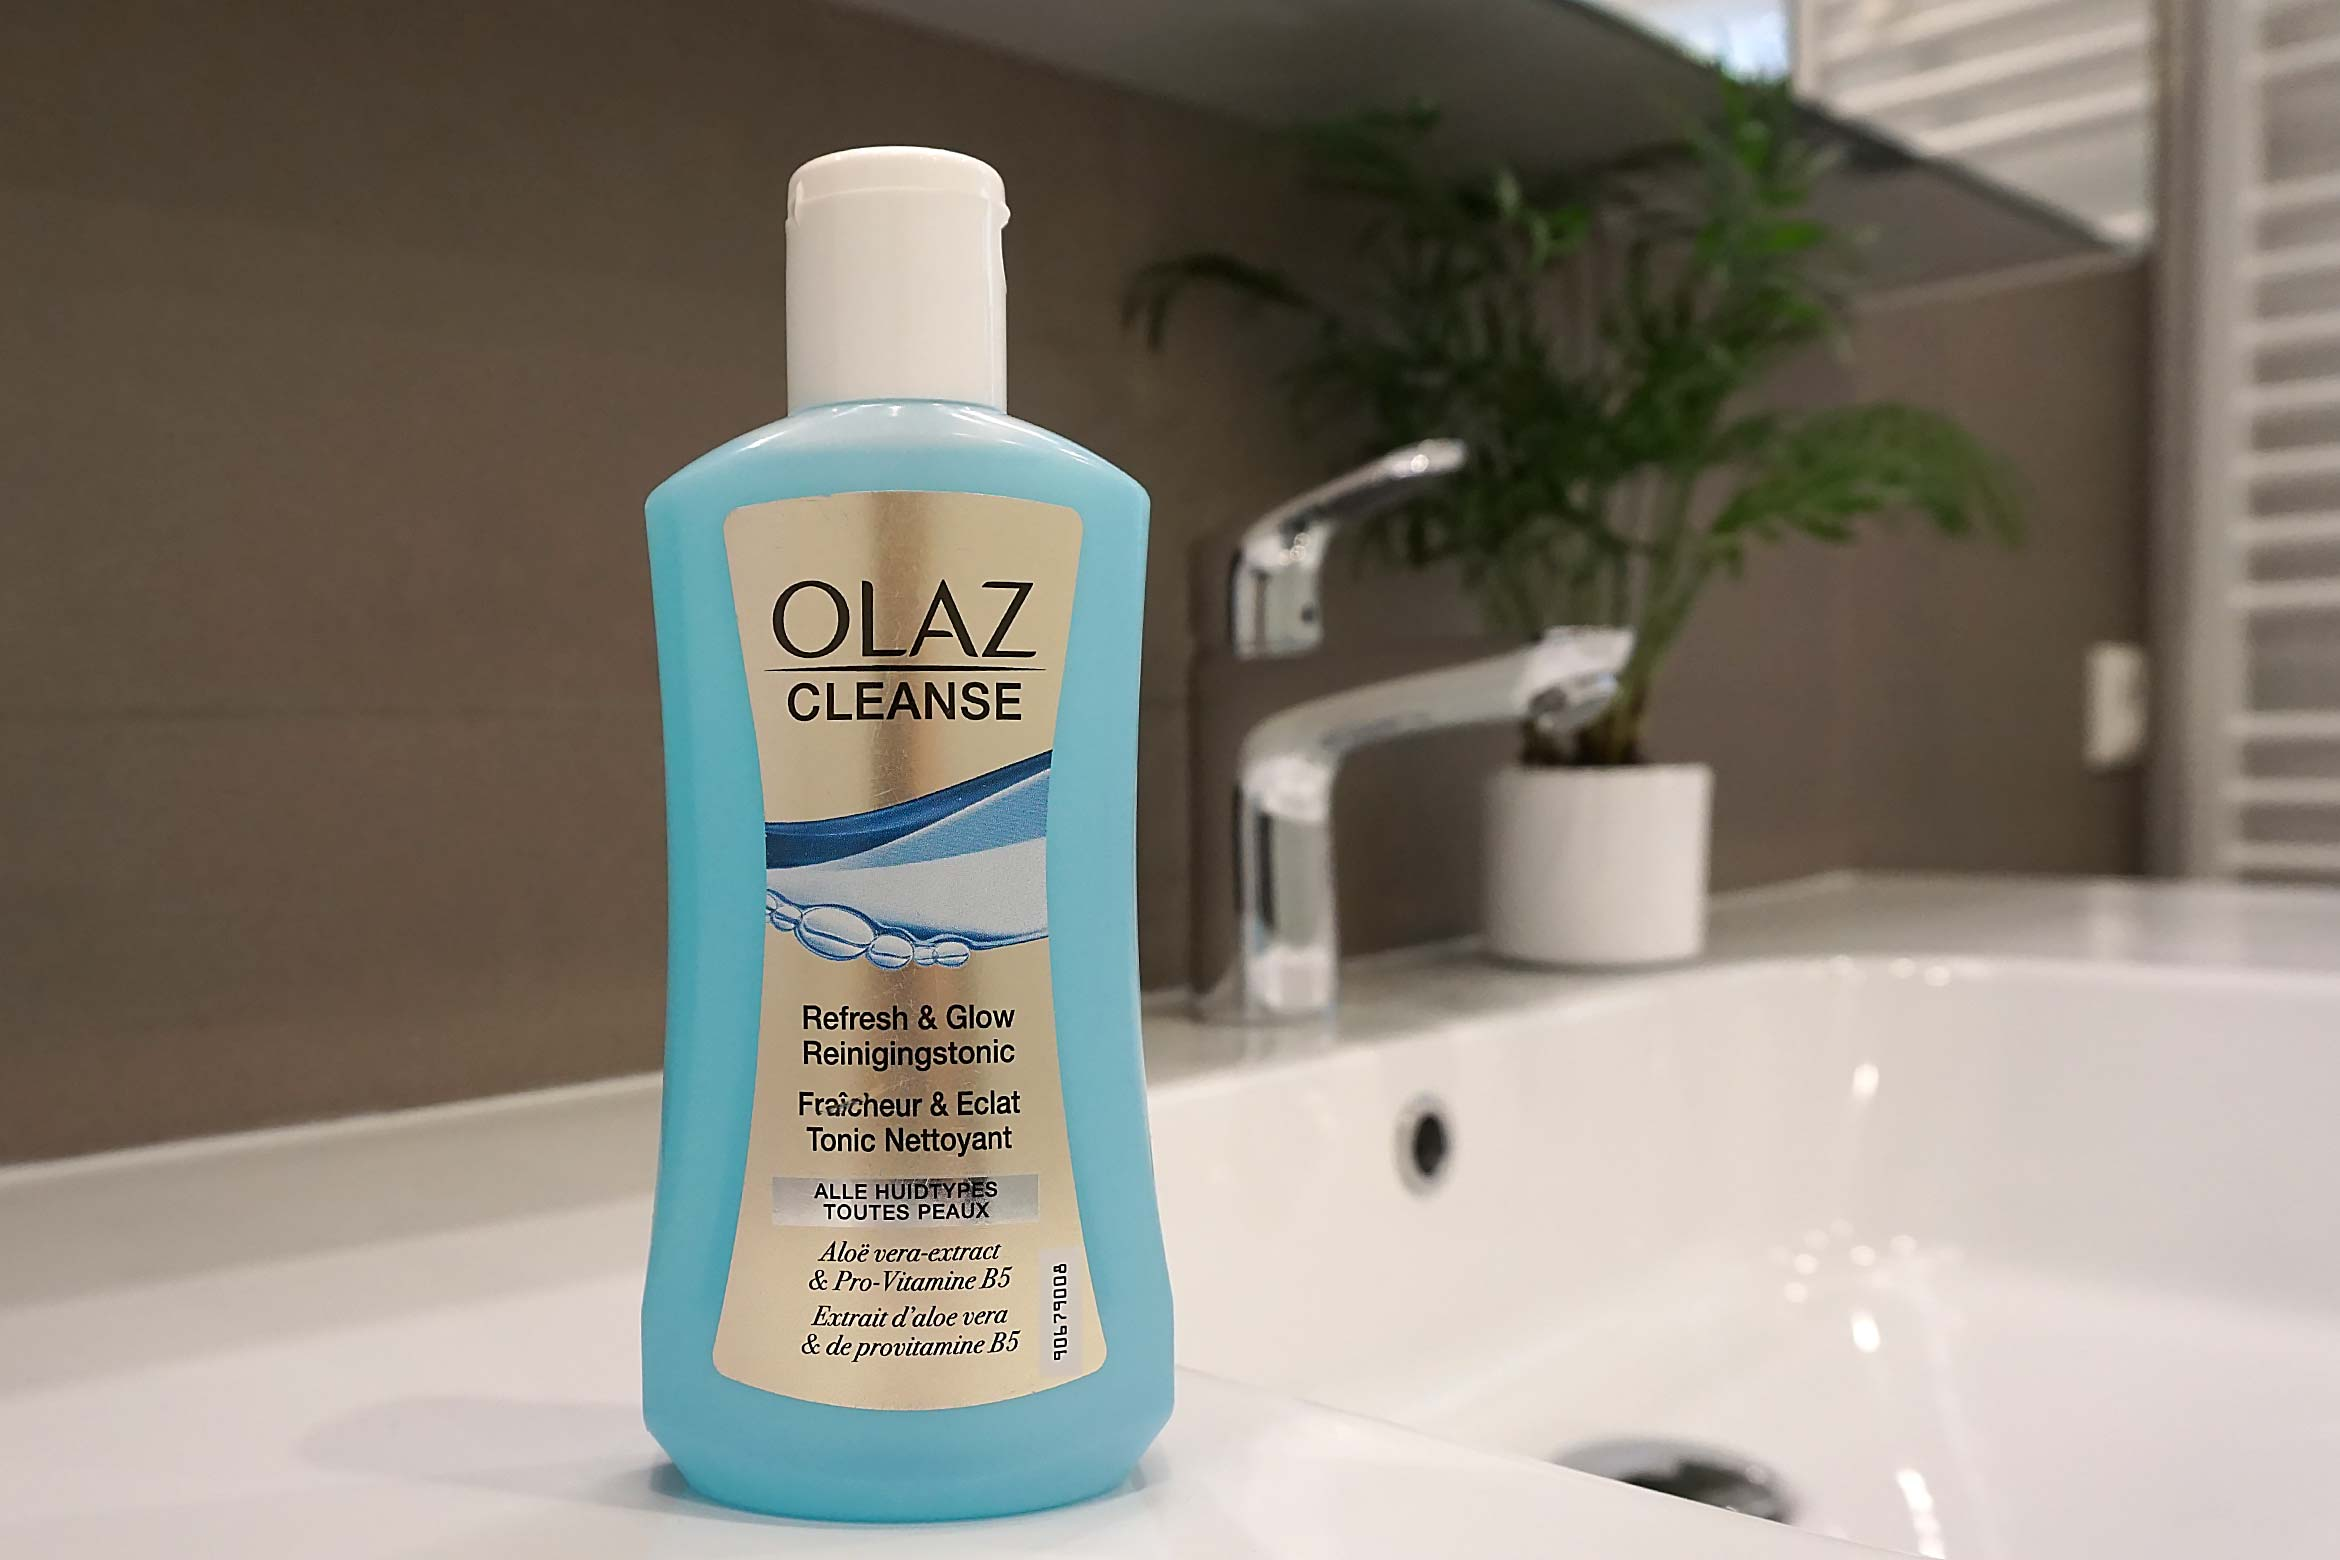 olaz cleanse refresh glow reinigingstonic review